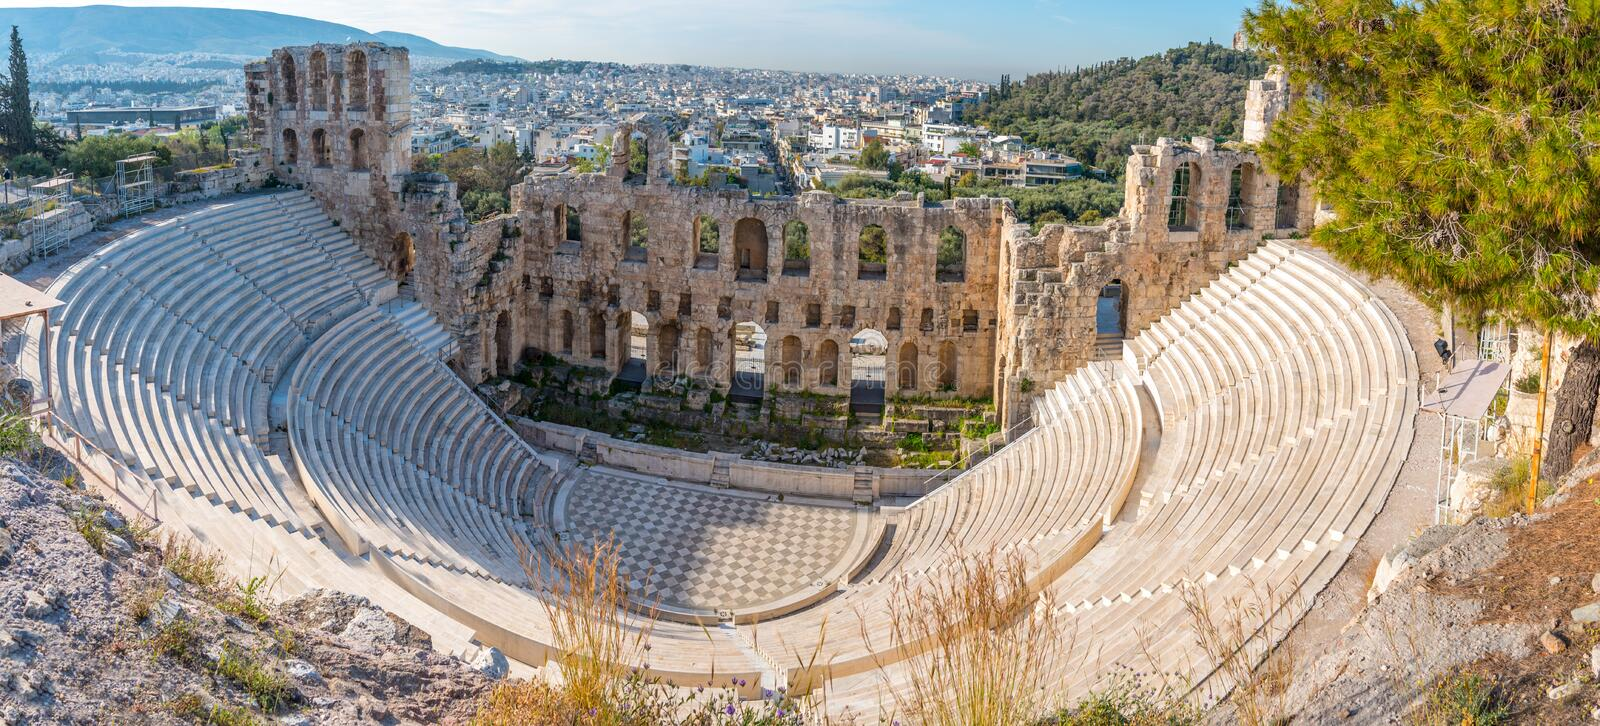 Odeon of Herodes Atticus in Athens, Greece. Odeon of Herodes Atticus as seen from the Acropolis Hill in Athens, Greece stock photo